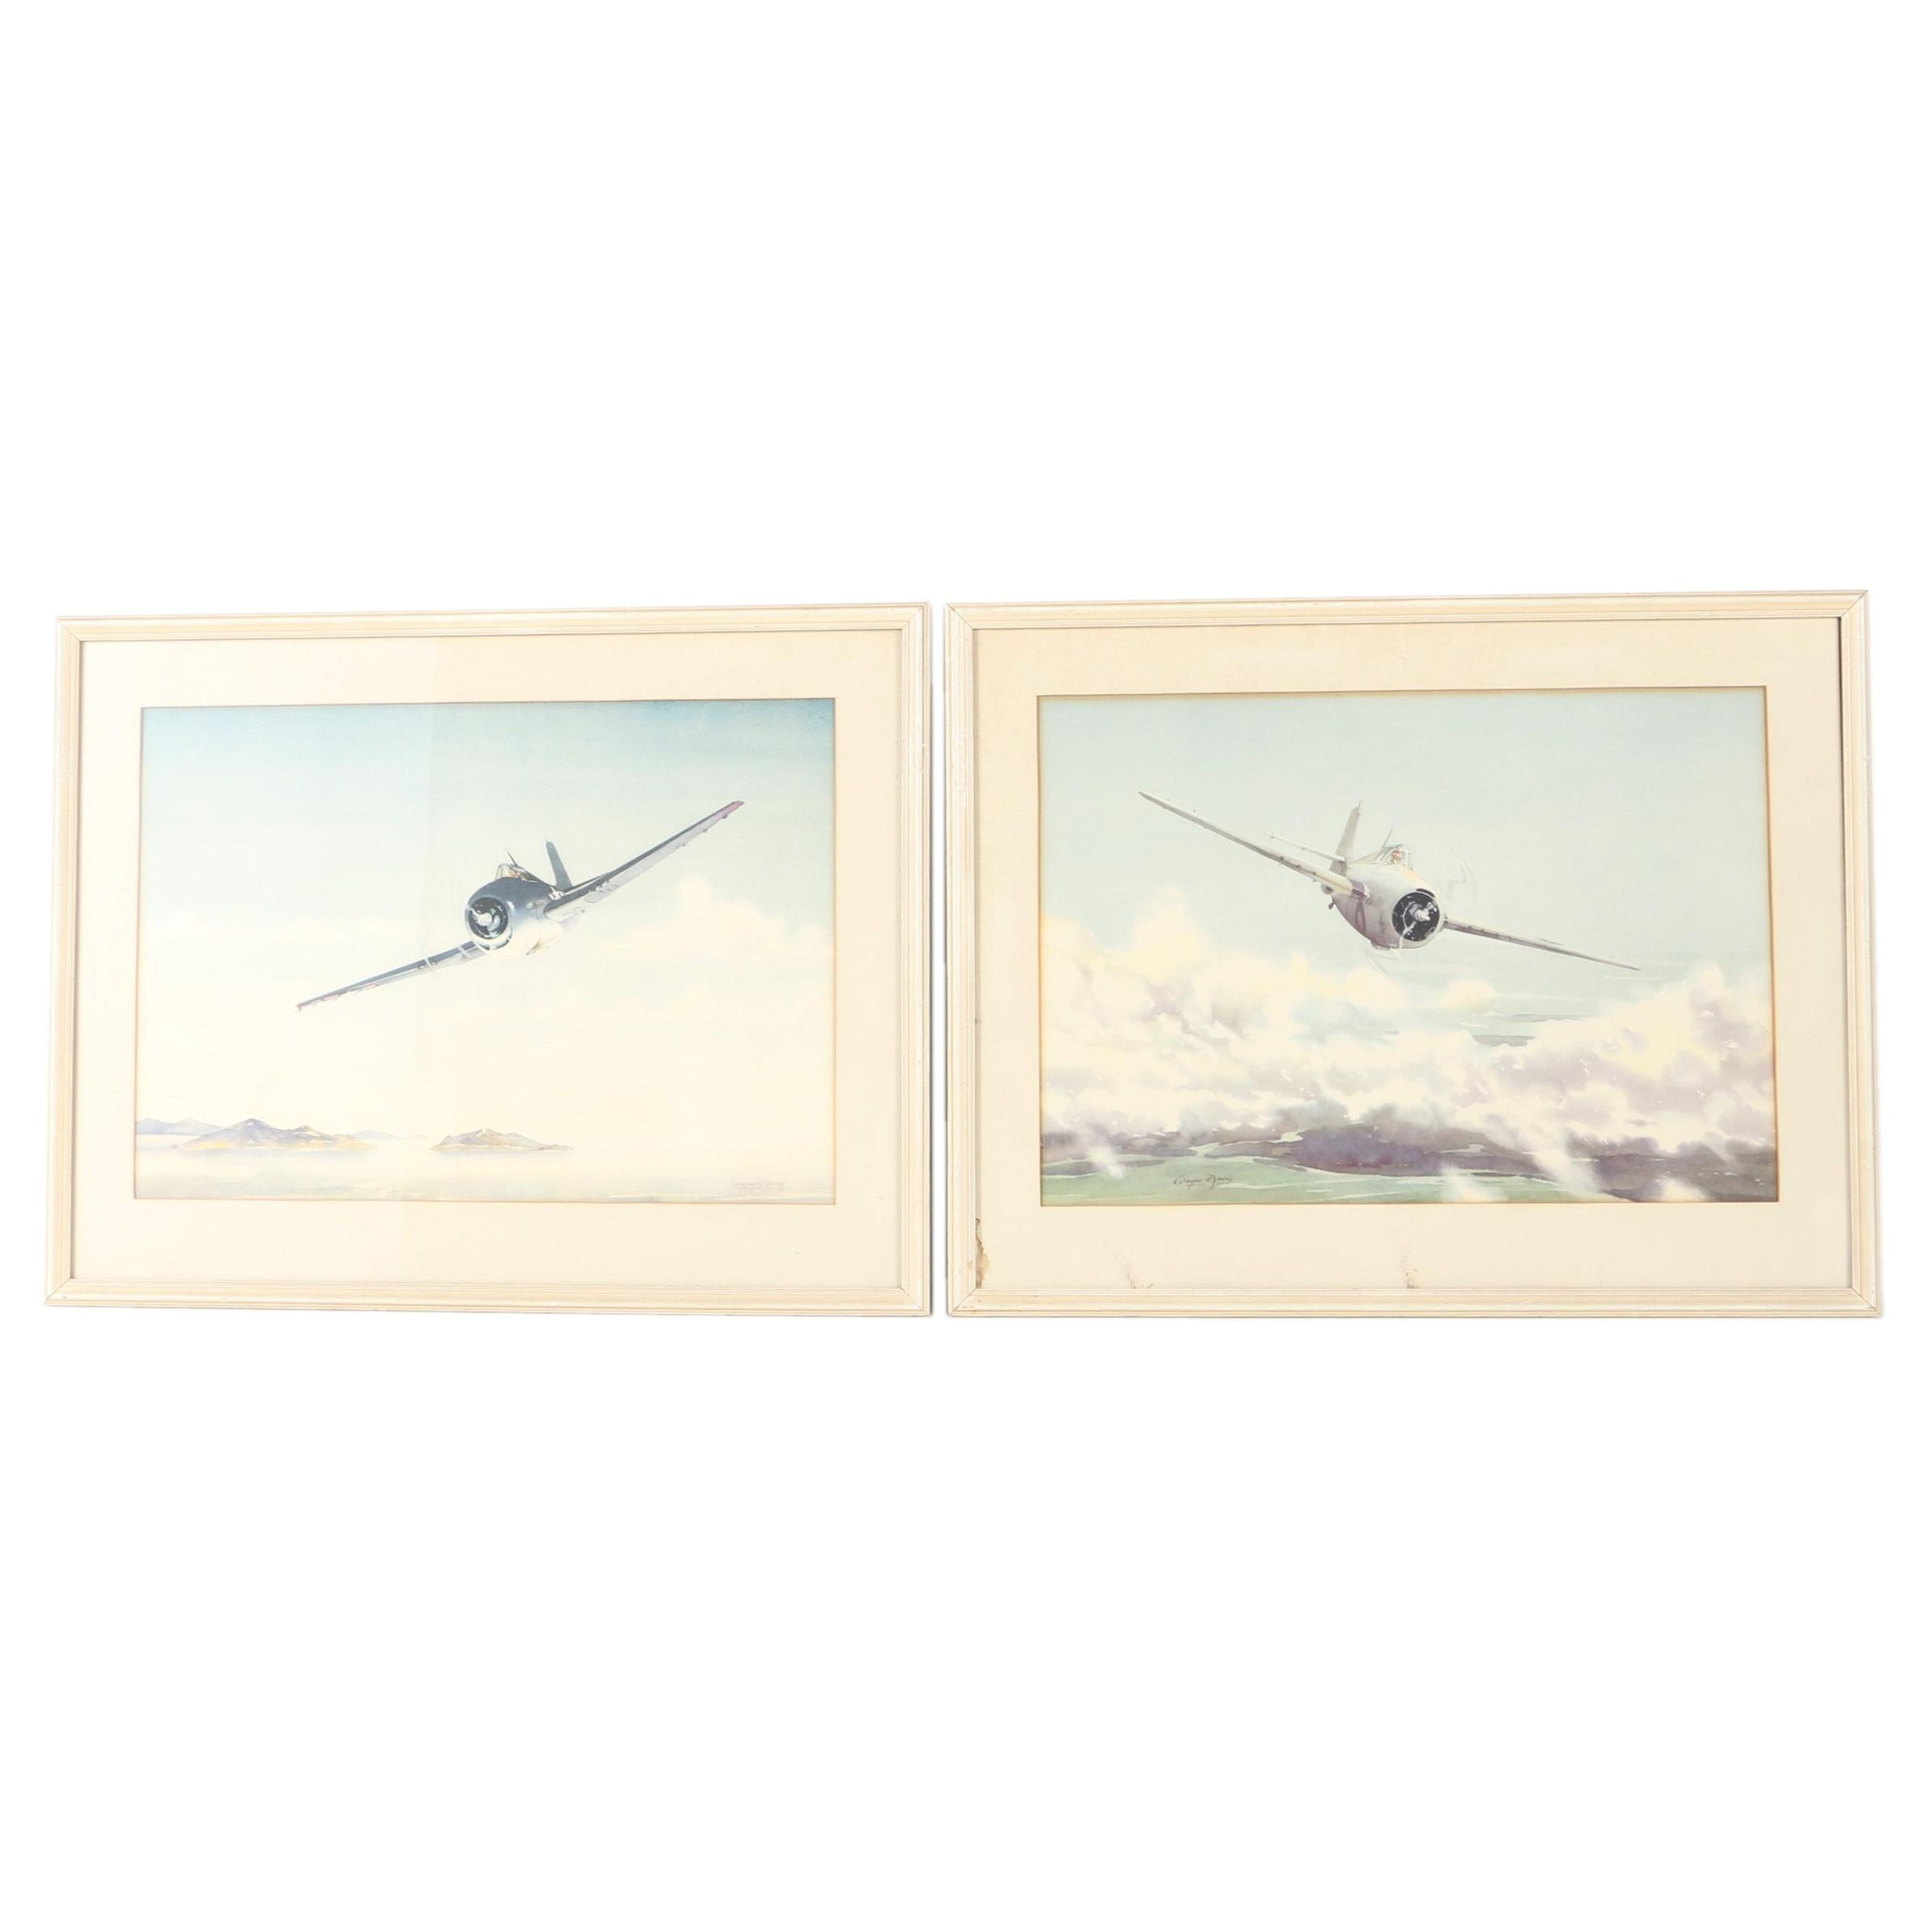 Offset Lithographs After Wayne Davis of Military Airplanes